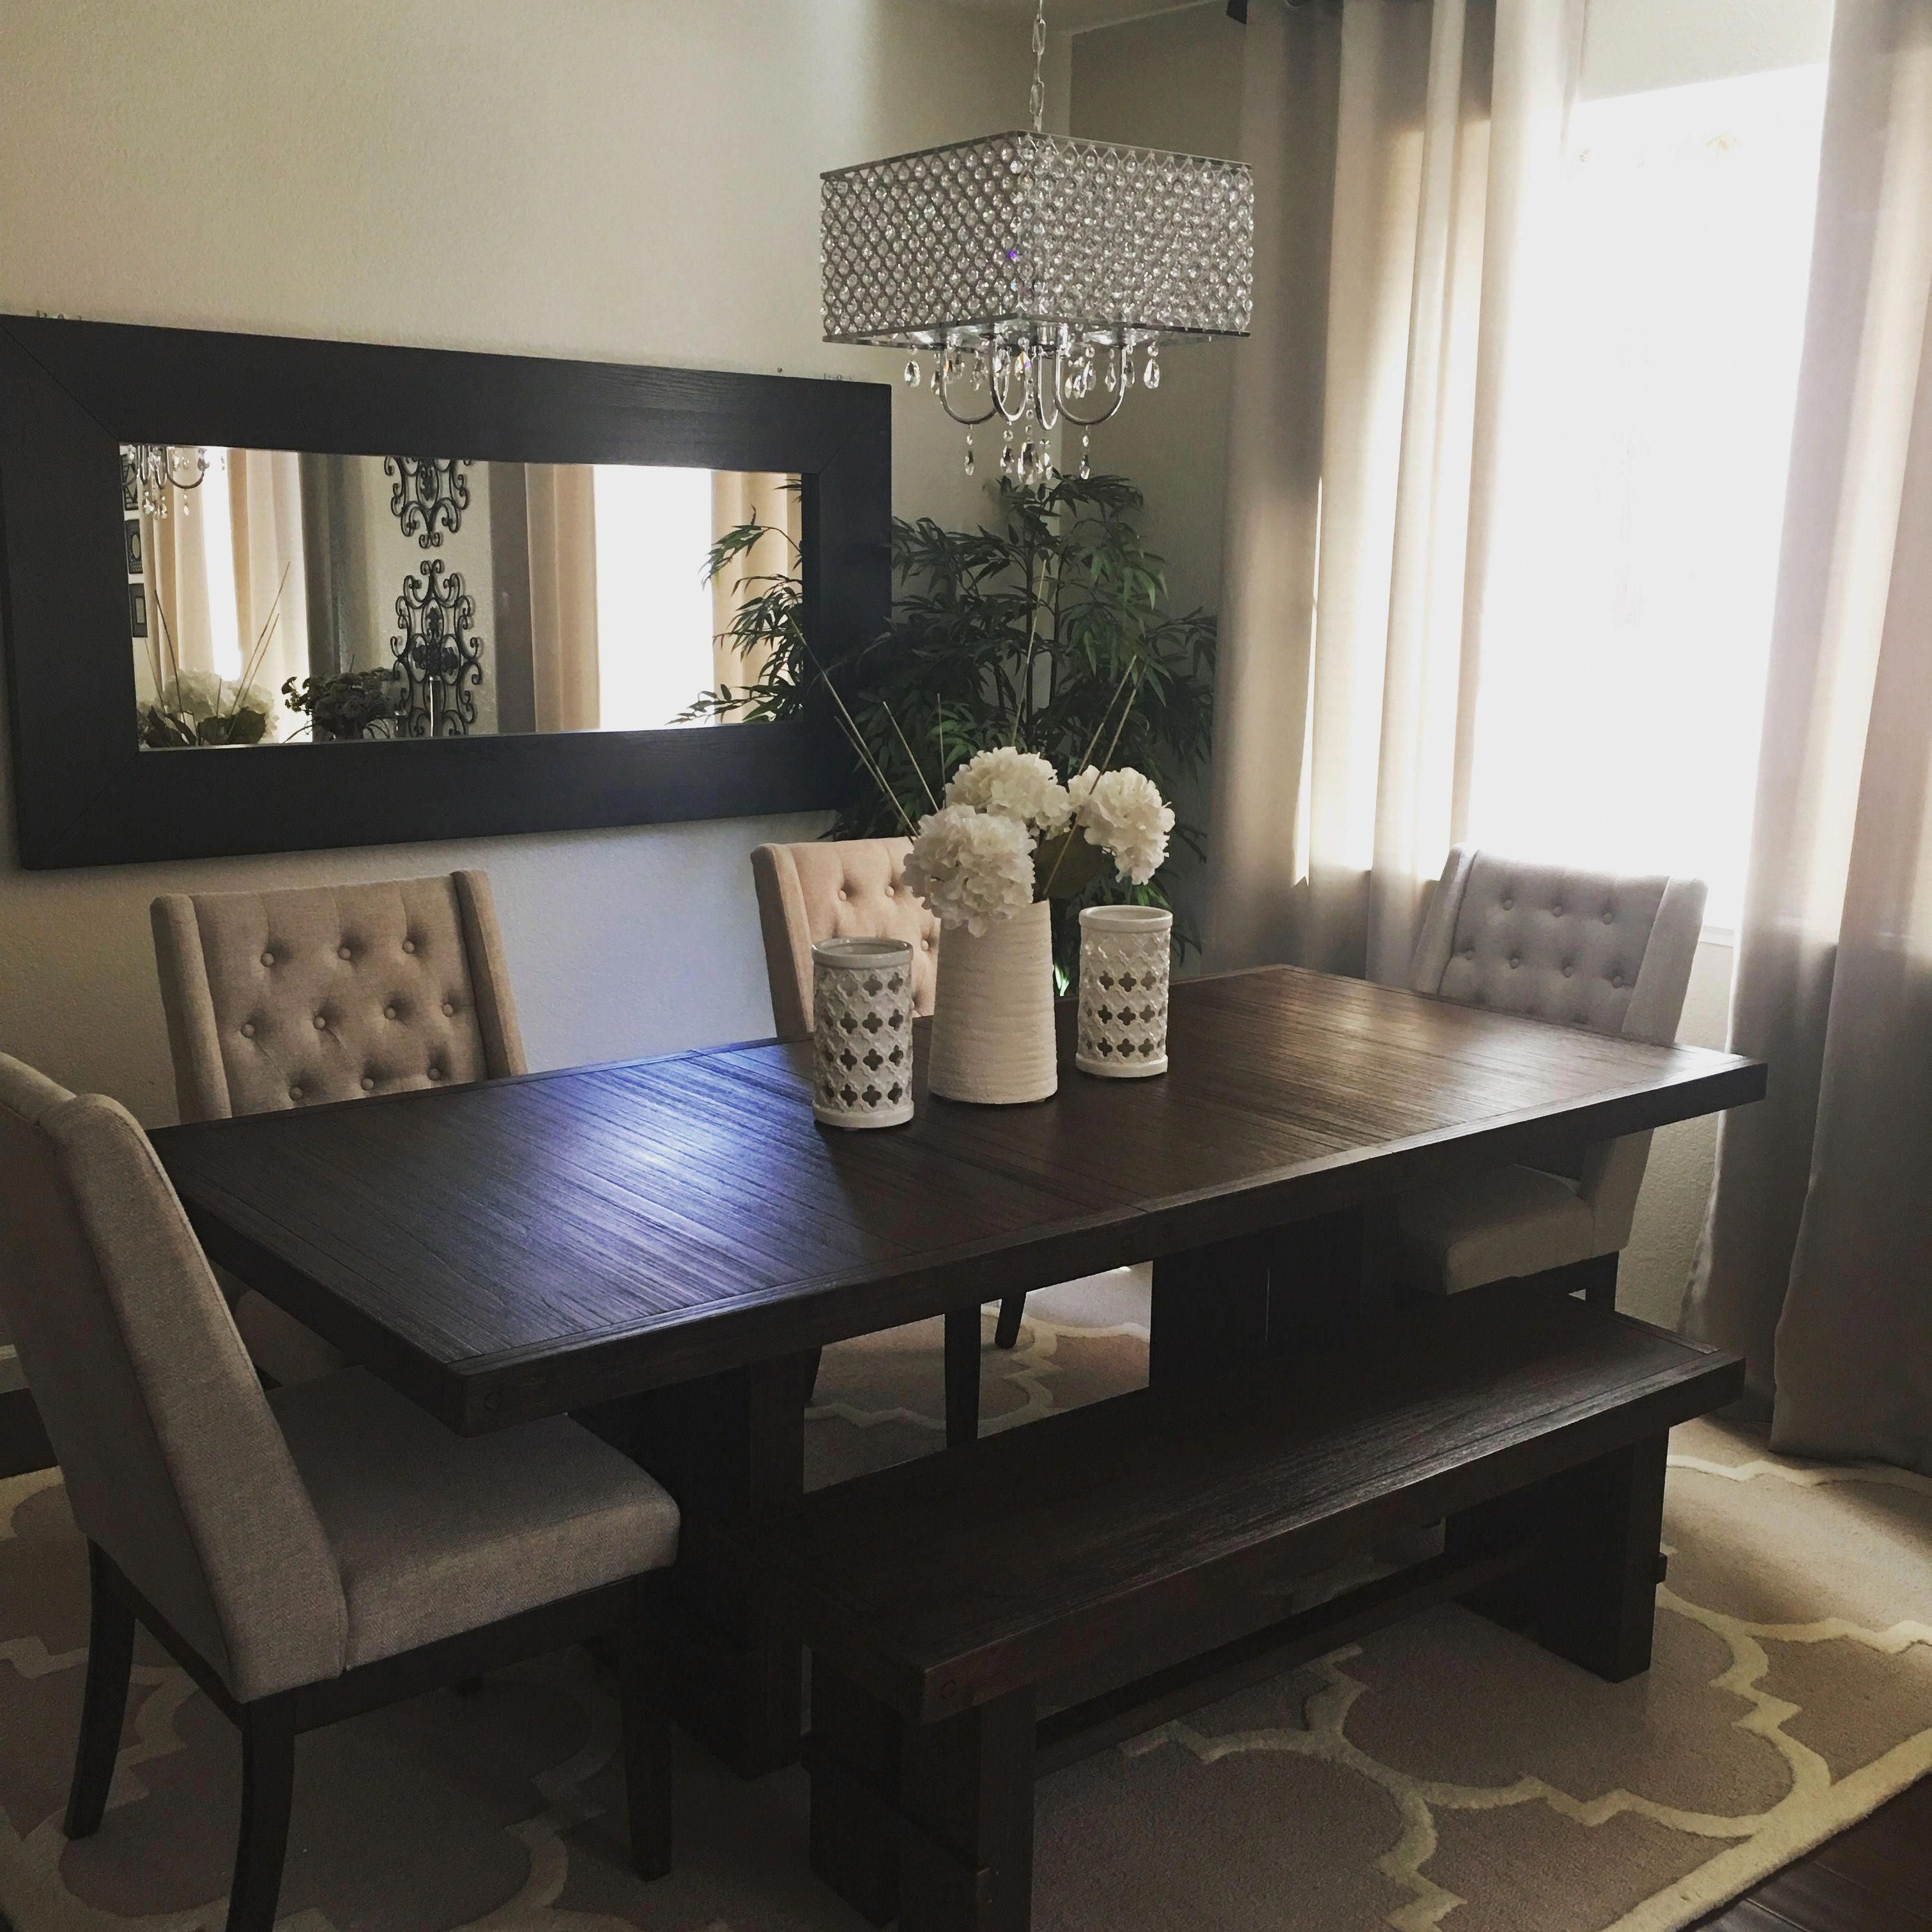 11 Incredible Dining Tables For Small Spaces Dining Table For Small Spaces Furniturejati Furnitureruma Dining Room Small Dinning Room Decor Dining Room Decor